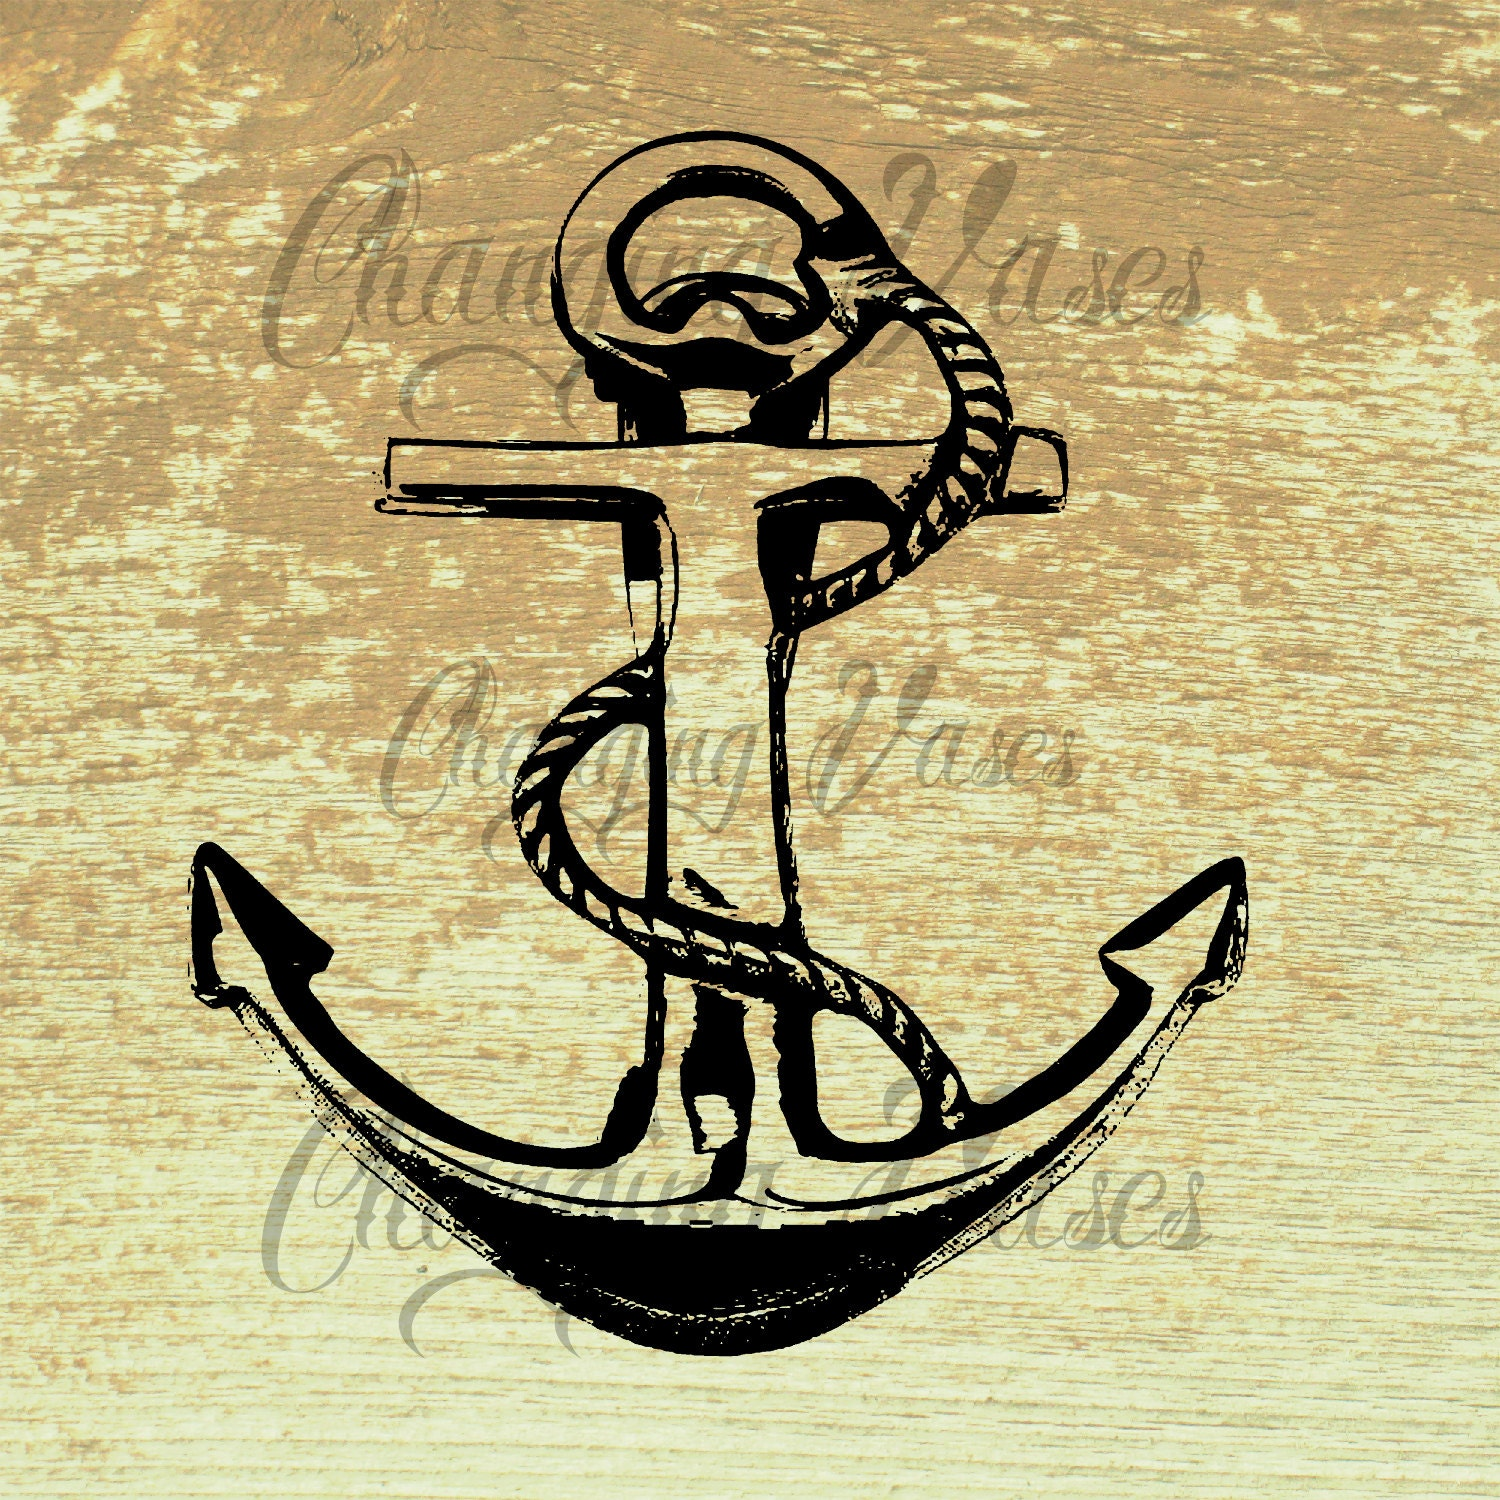 Vintage Boat Anchor Clipart Clip Art Nautical by ChangingVases Vintage Anchor Drawing